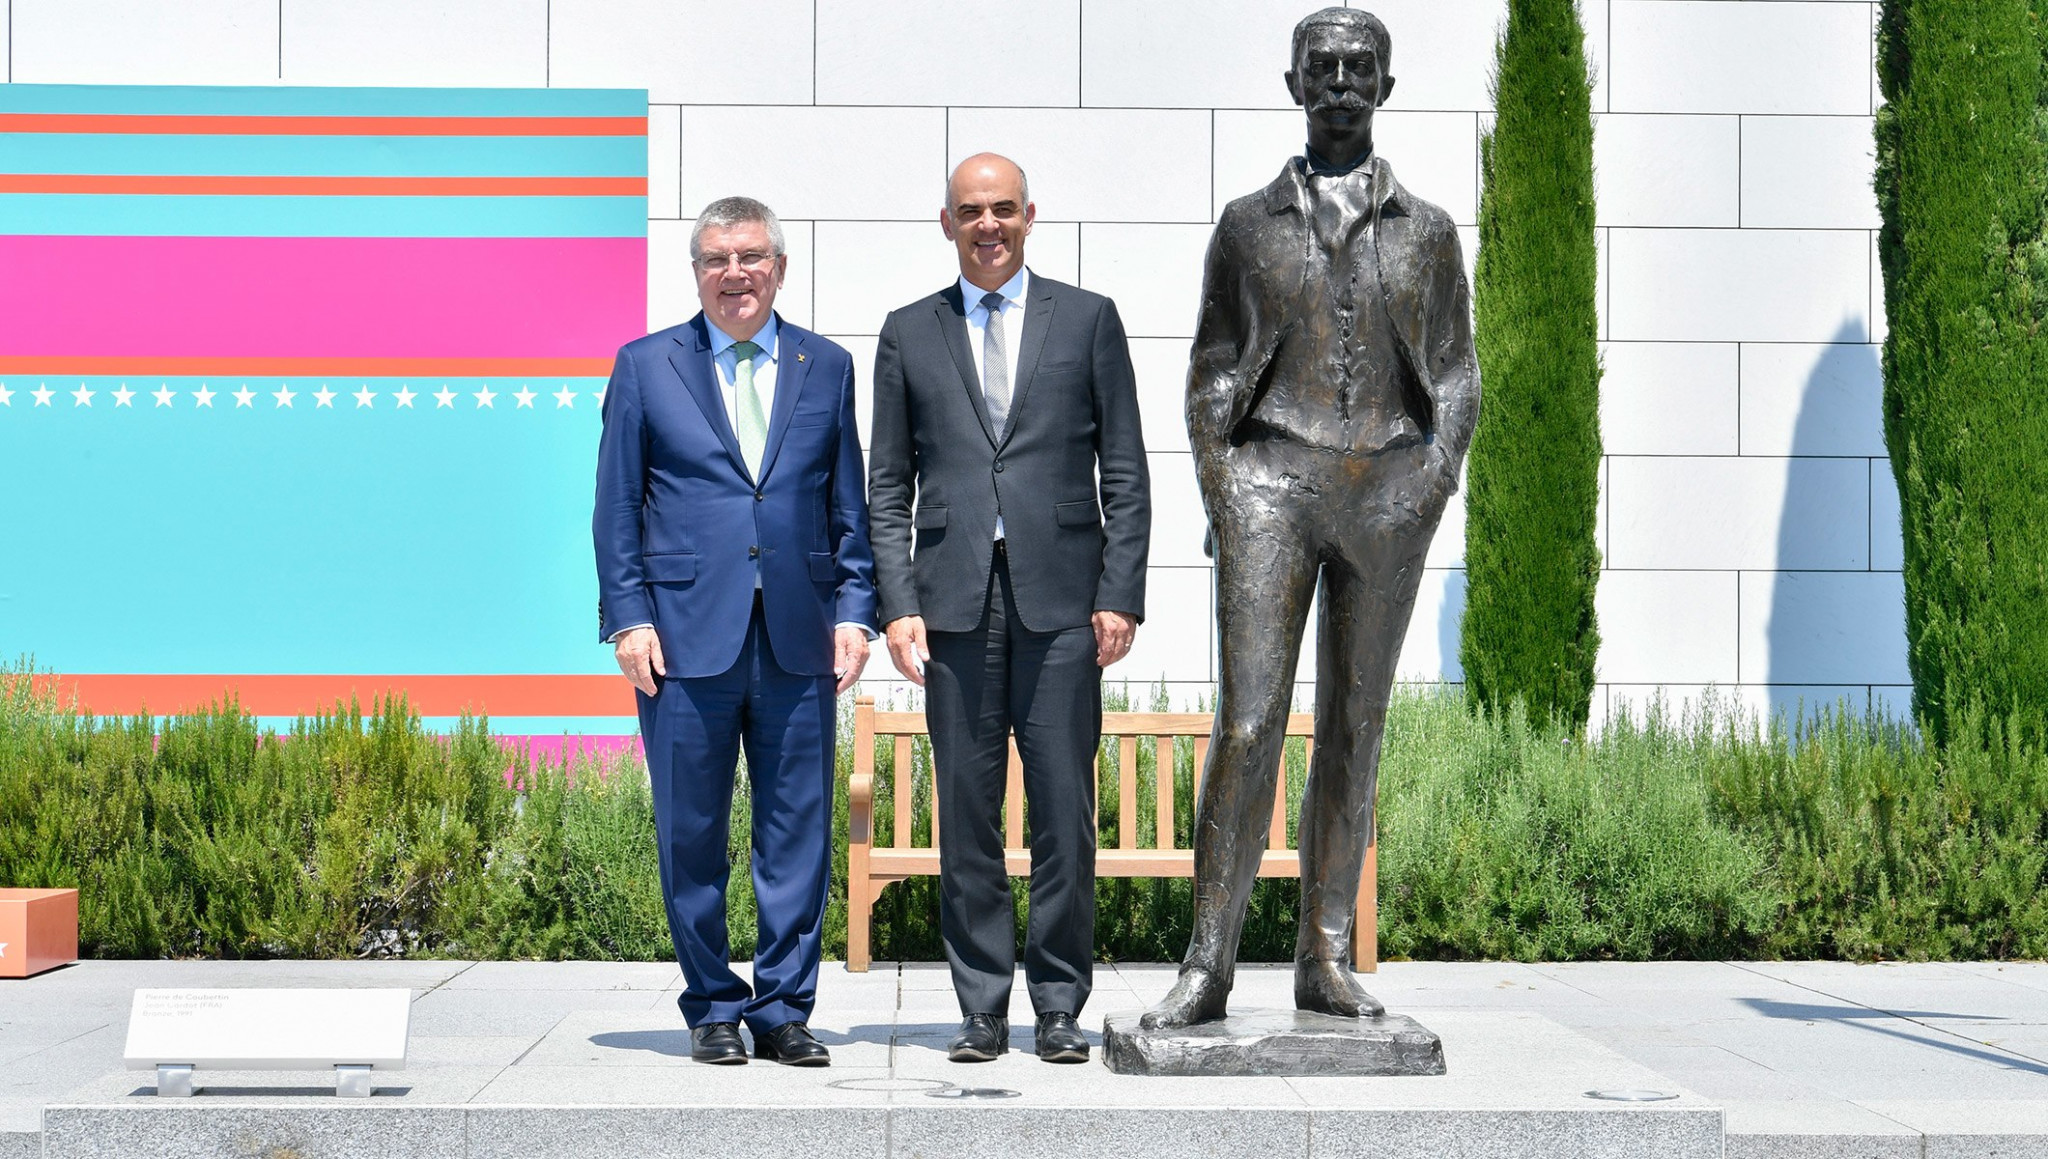 Bach welcomes Swiss President to Olympic Museum